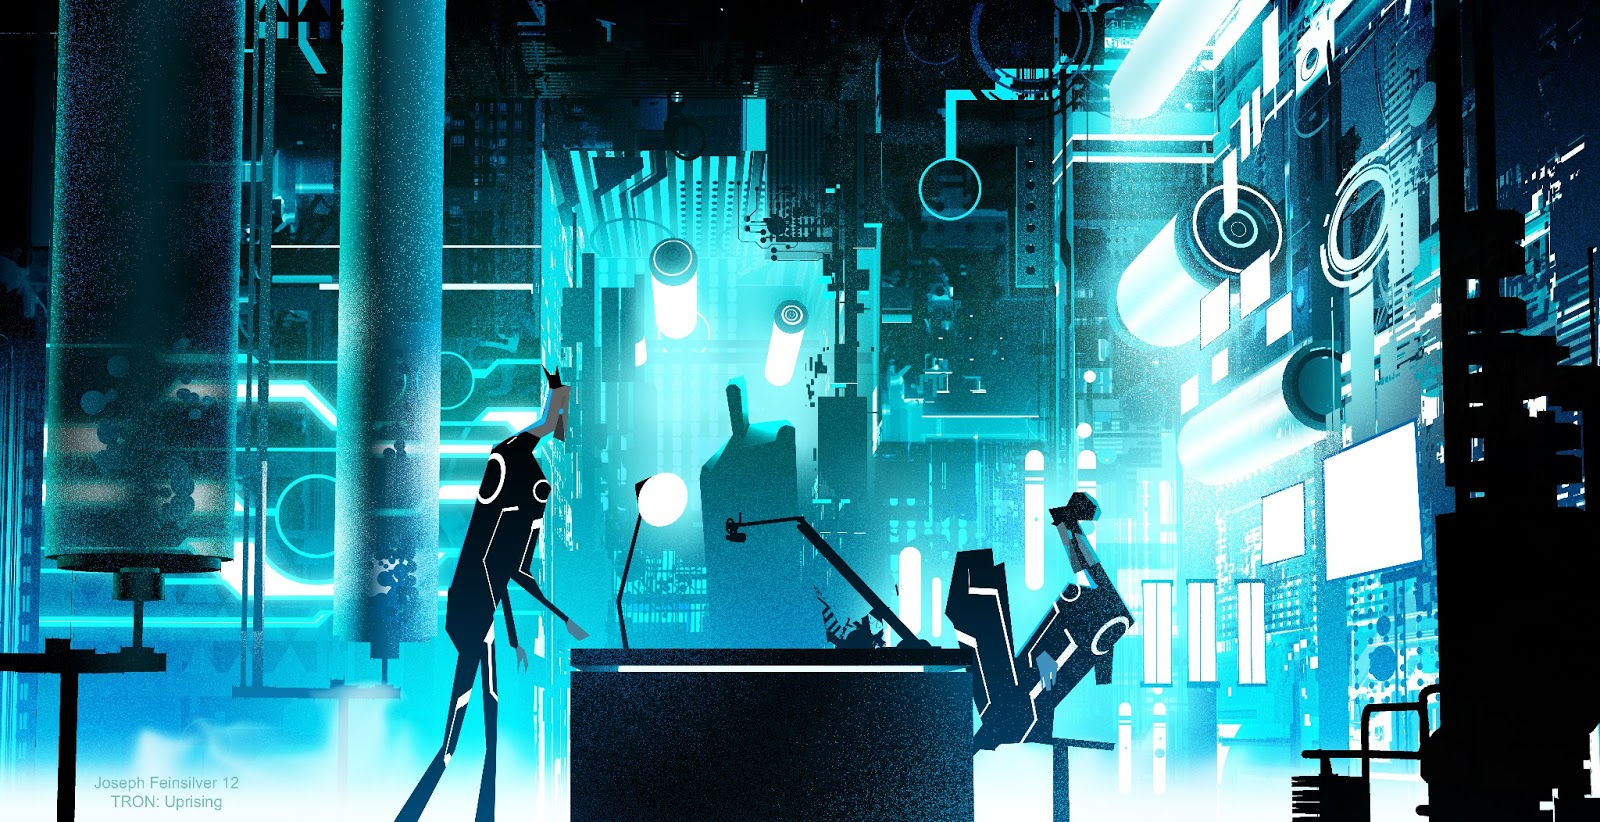 Hacker Iphone Wallpaper Tron Uprising Wallpapers Pictures Images